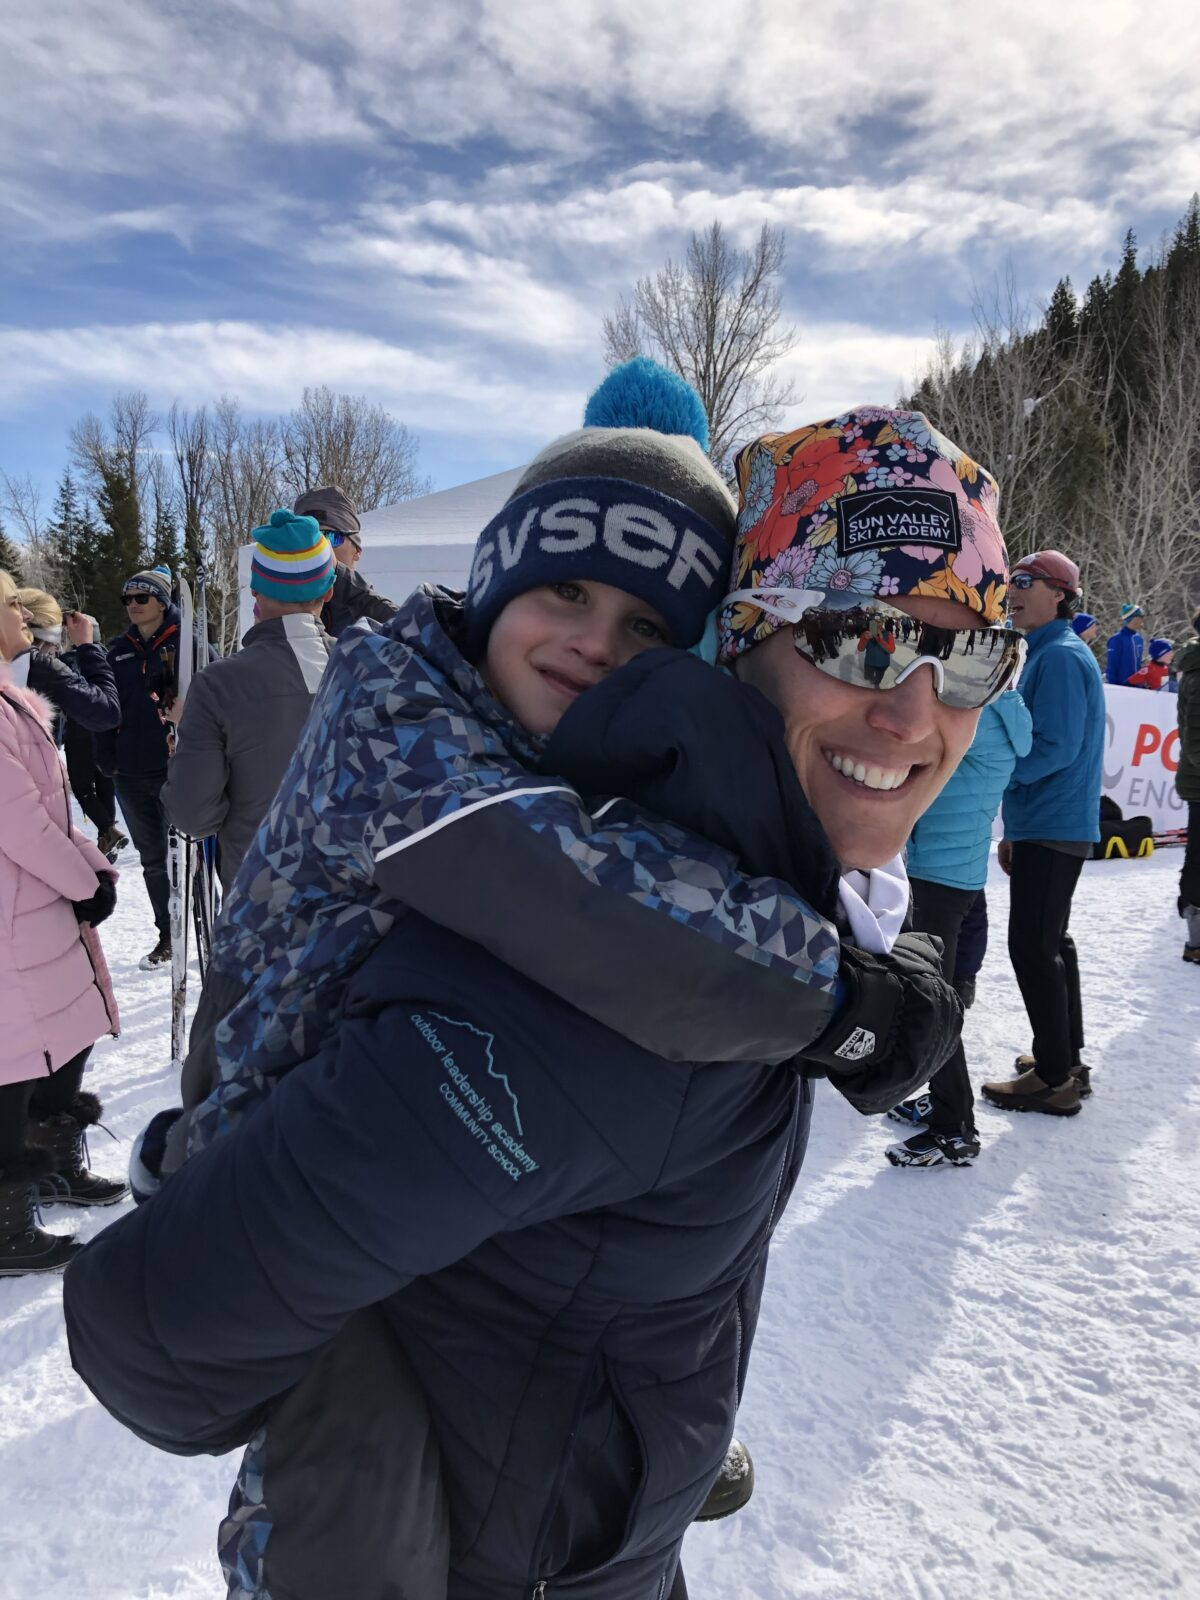 Results Posted for the 2020 Zions Bank Boulder Mountain Tour